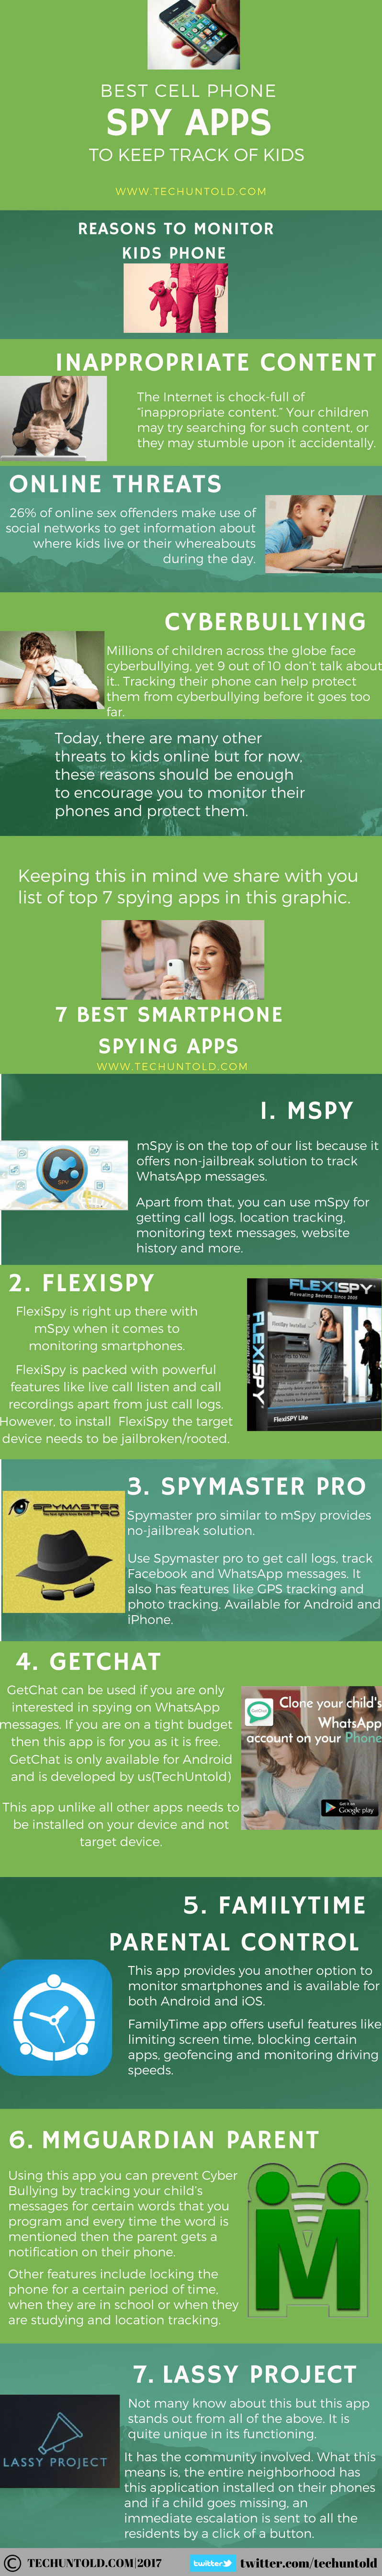 7 Best Cell Phone Spy Apps to Monitor Kids [Infographic]